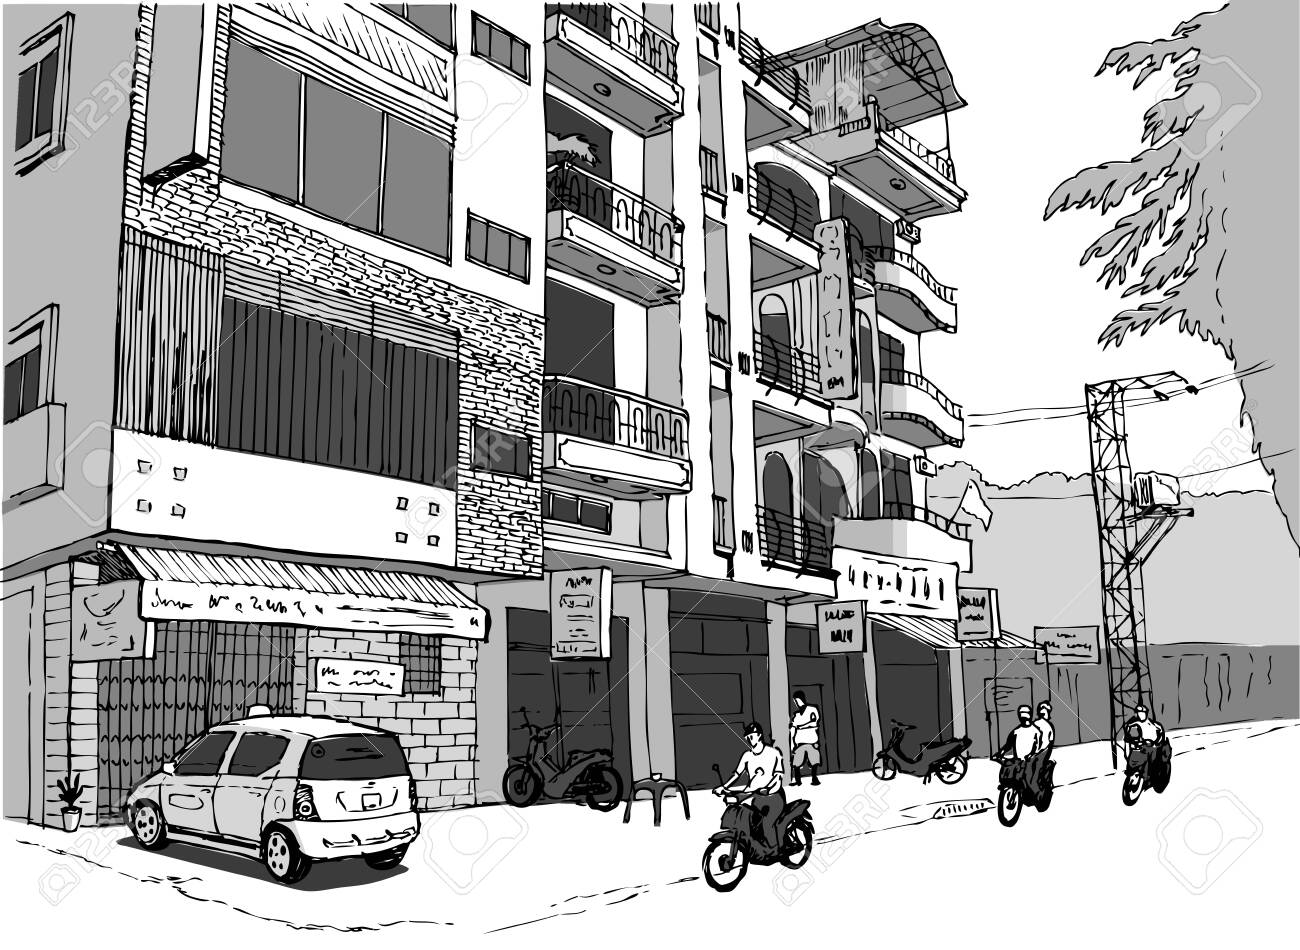 small shopping street in Vietnam, people on scooters, gray color scheme - 157039887